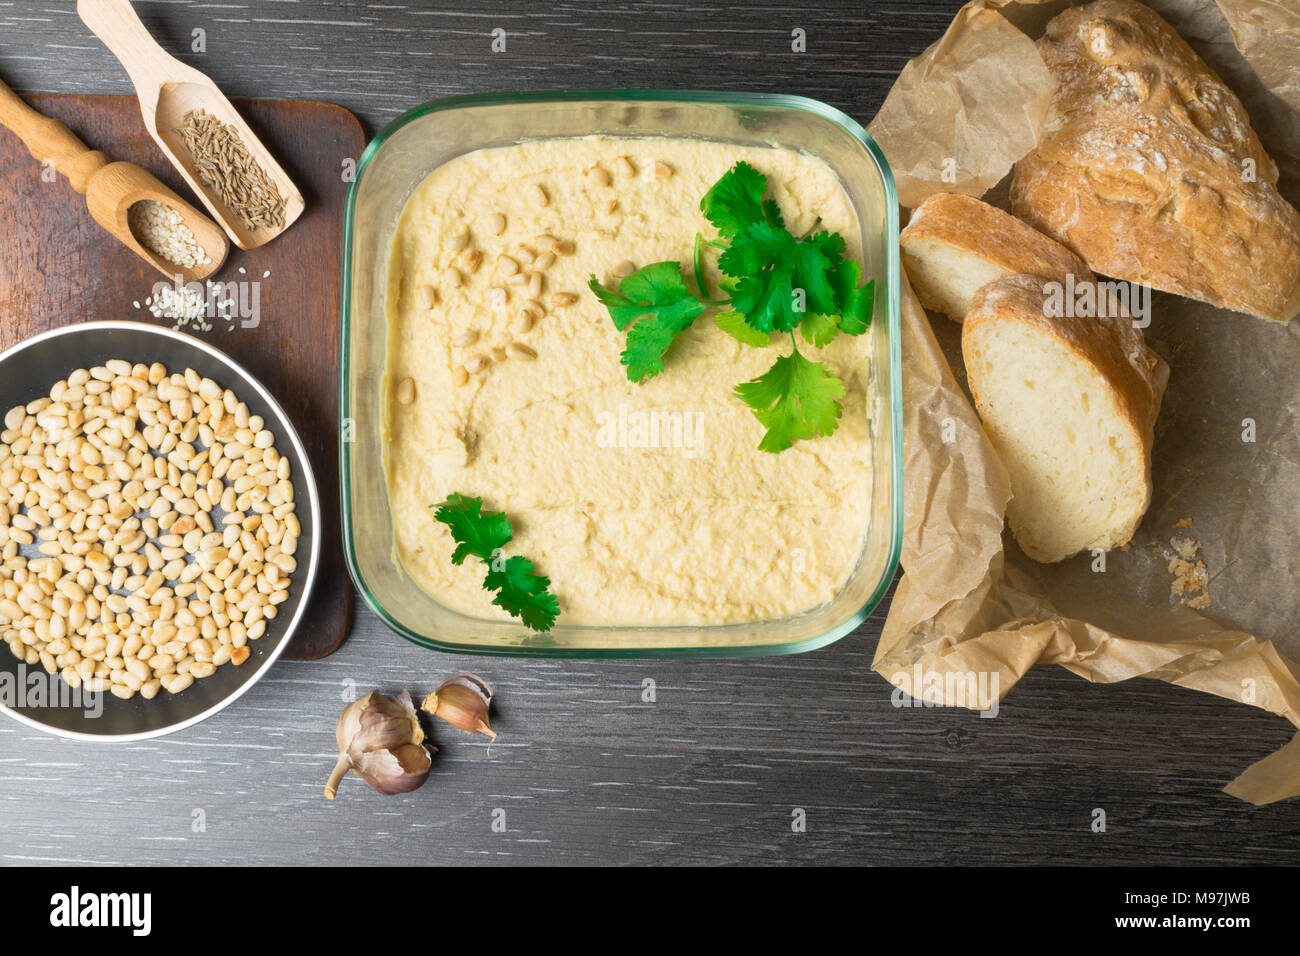 Hummus or houmous, appetizer made of mashed chickpeas with tahini, lemon, garlic, olive oil, parsley, cumin on wooden table - Stock Image